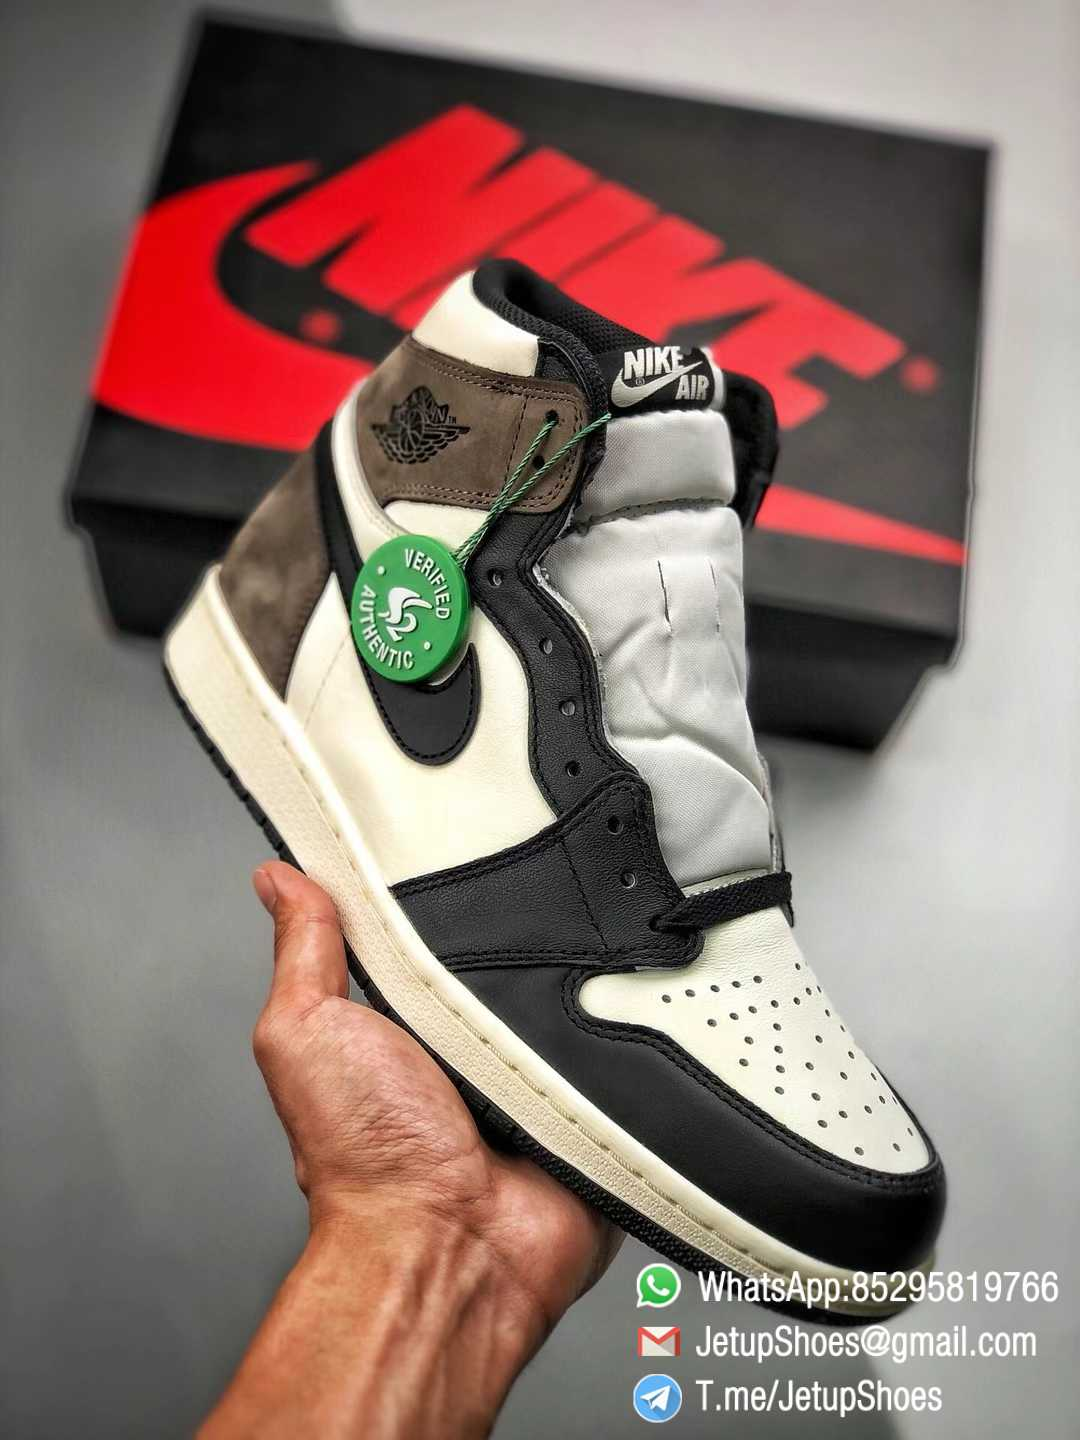 Best Replica Air Jordan 1 Retro High OG Dark Mocha Off white Leather Base and Black Overylays Top Quality Sneakers 01